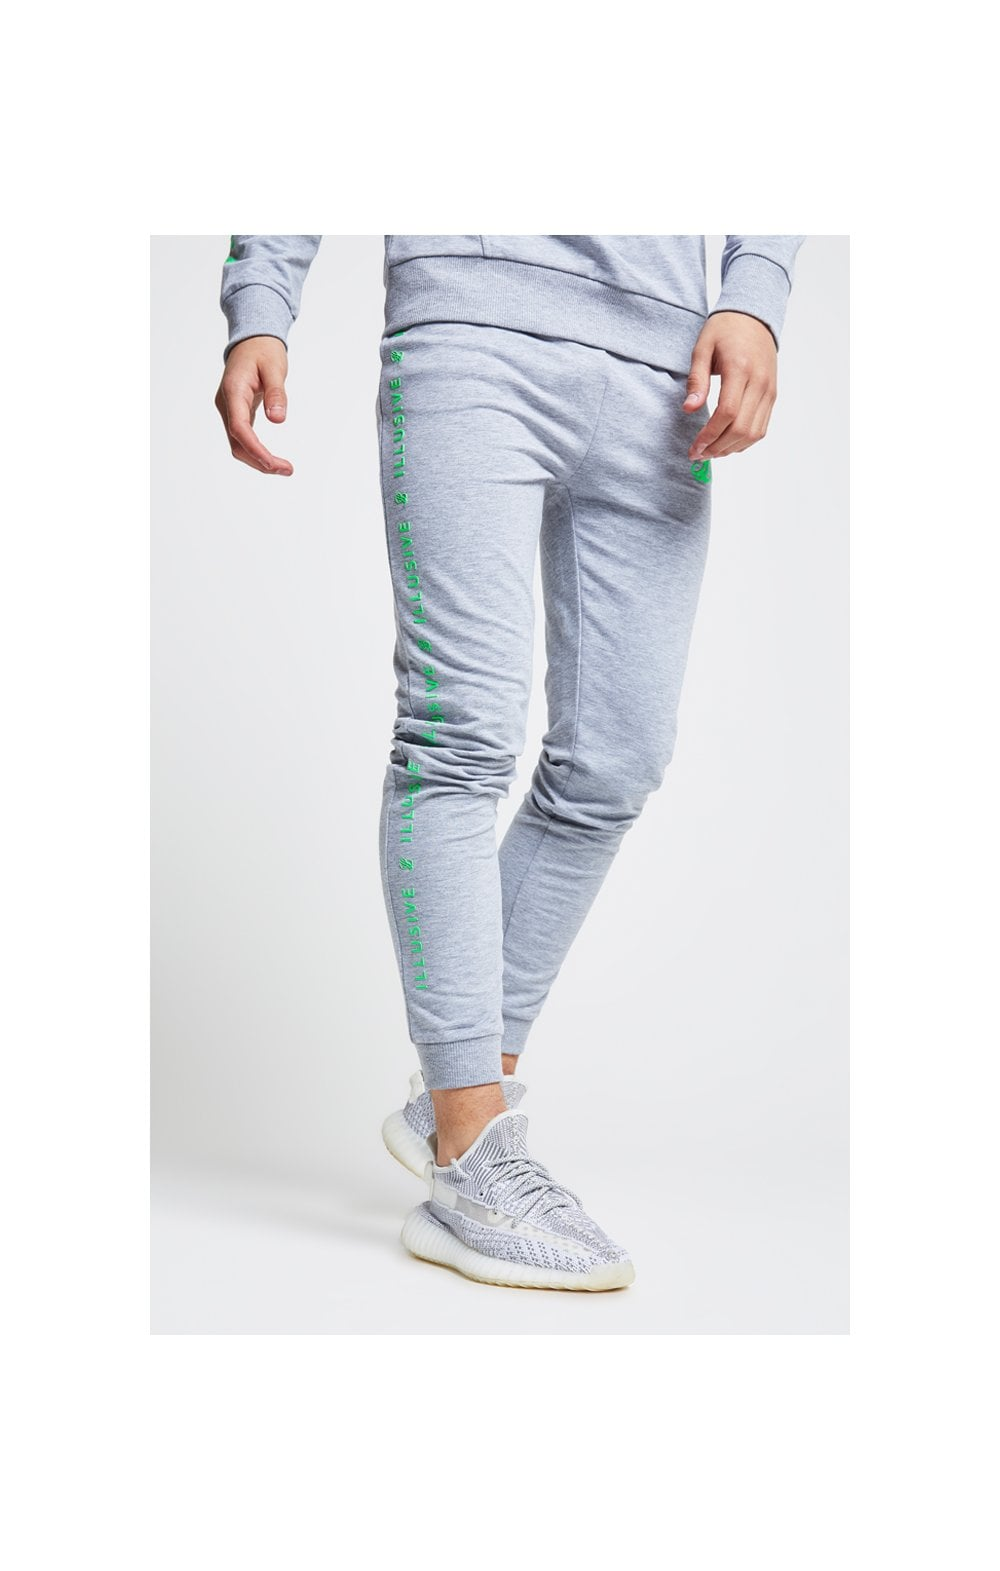 Load image into Gallery viewer, Illusive London Tape Cuffed Joggers - Grey & Neon Green (1)